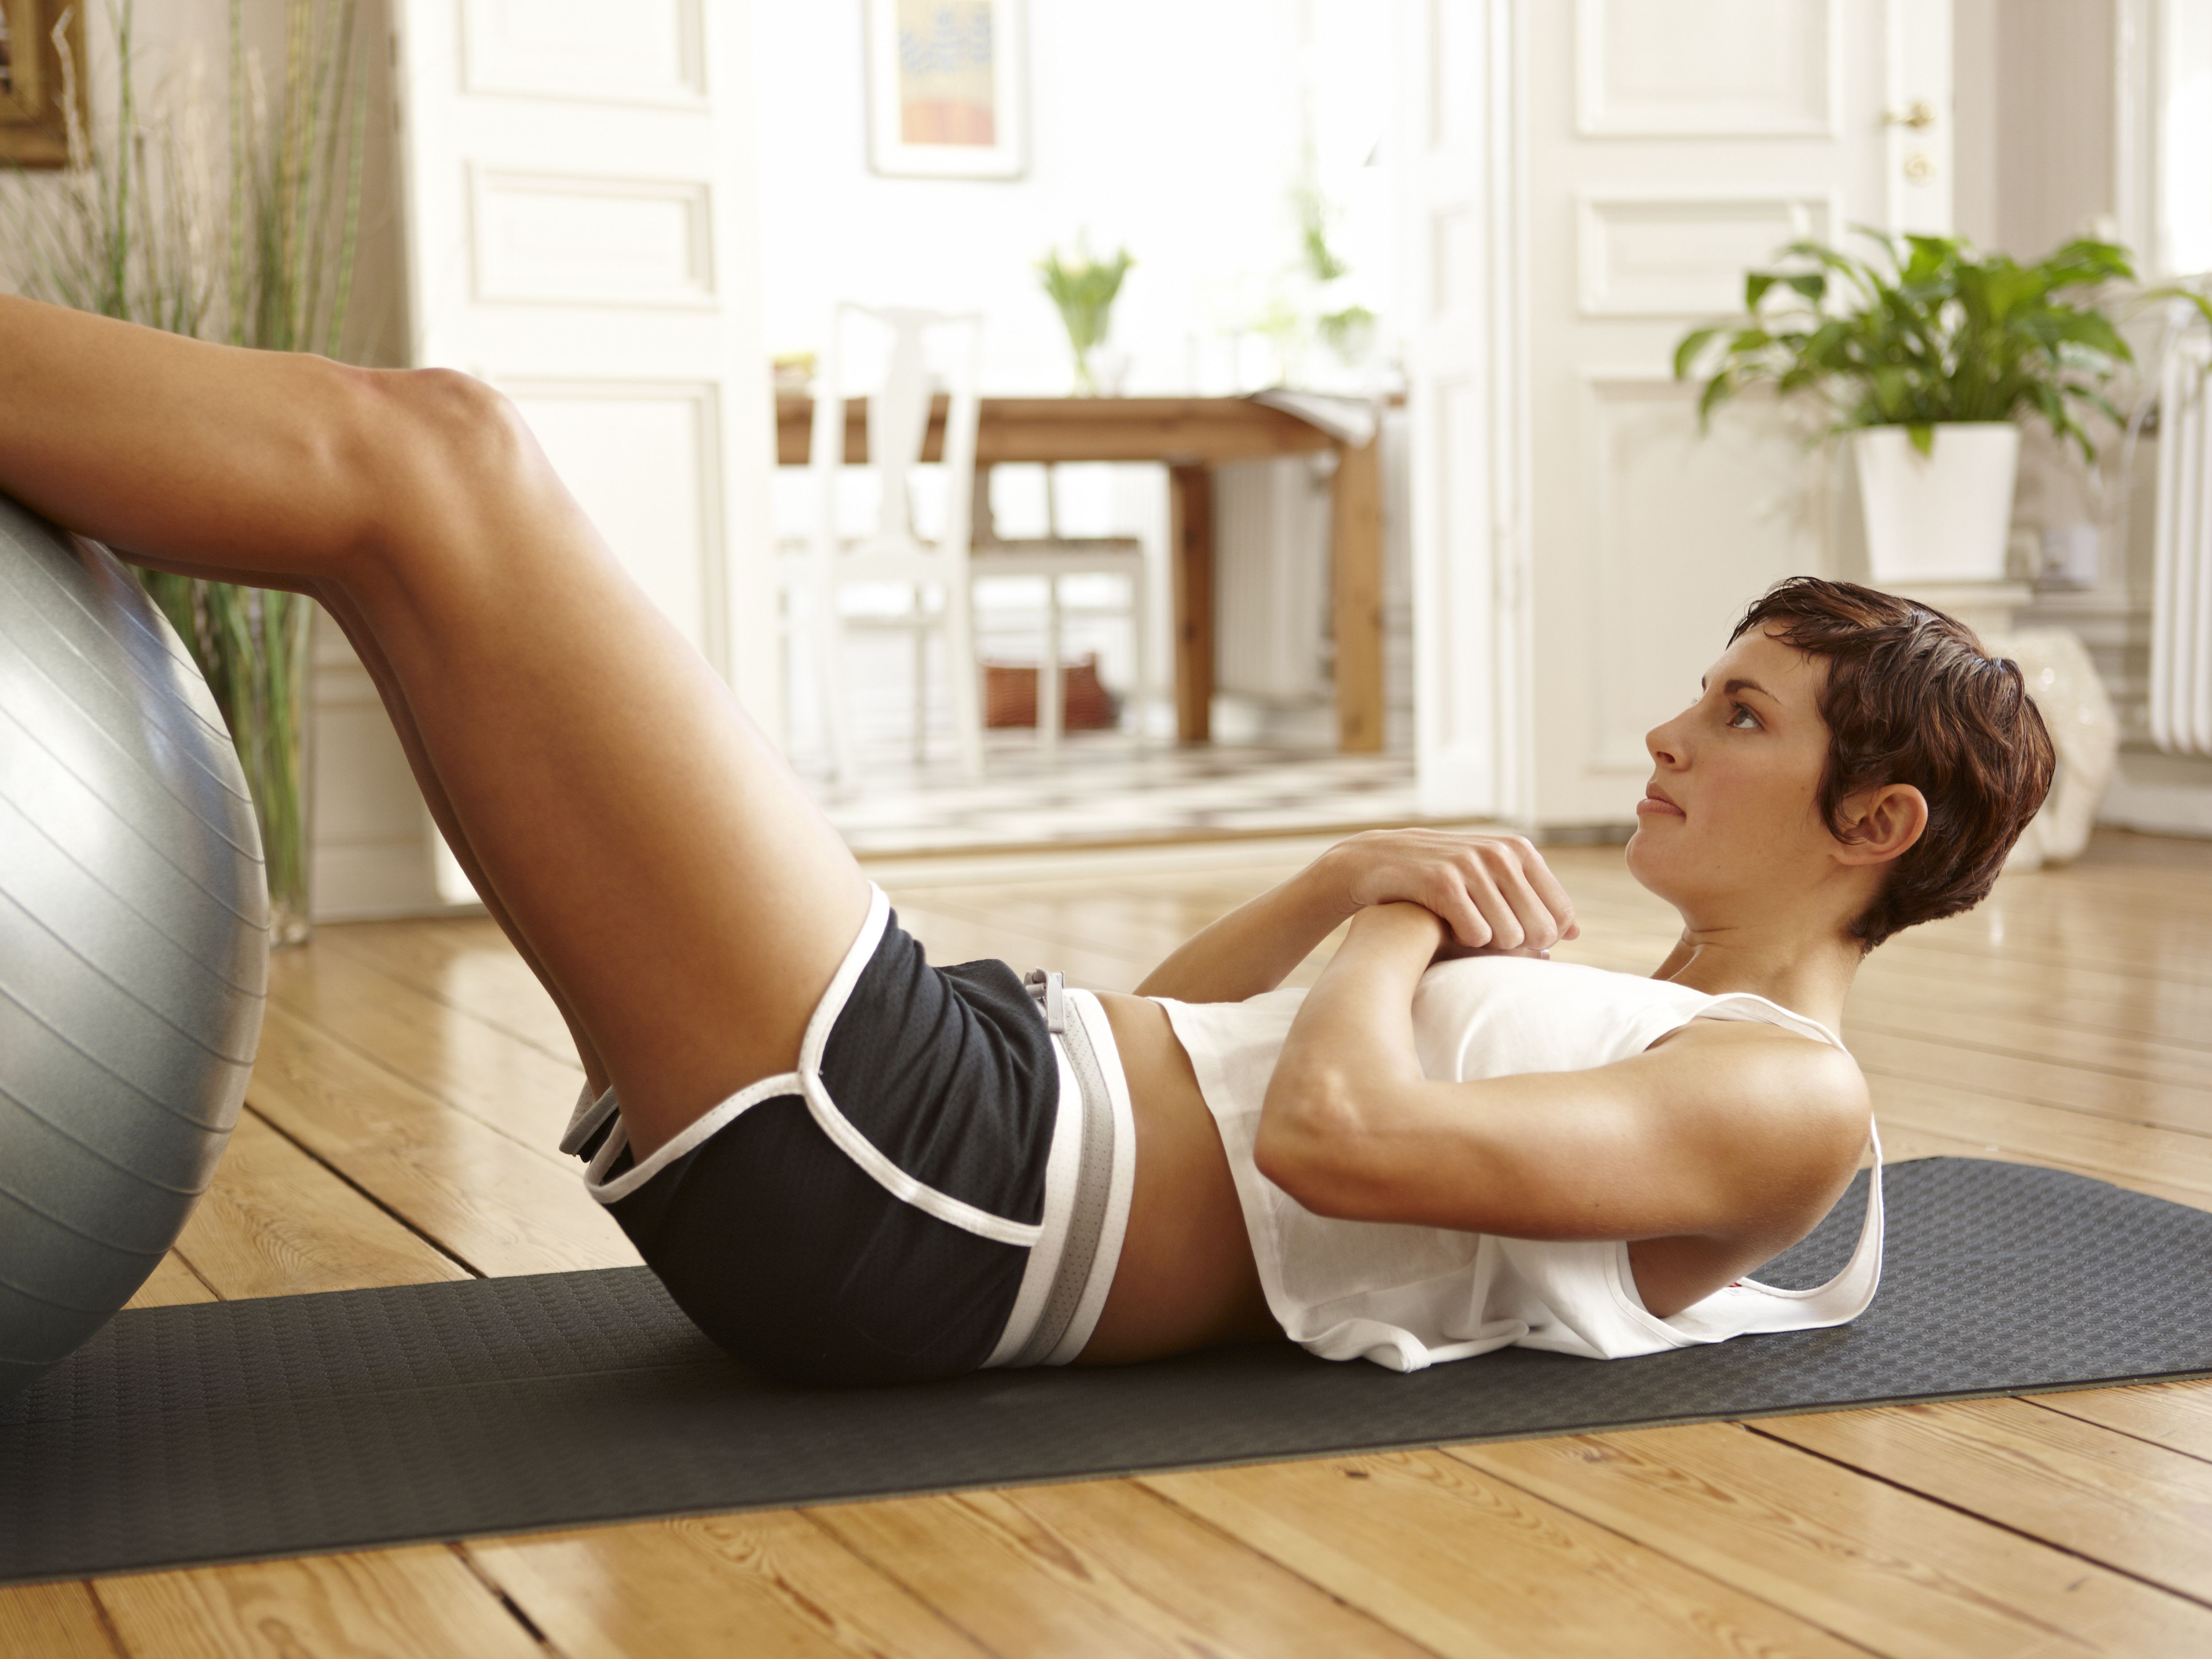 Deck Of Cards Workout For A Full Body Routine